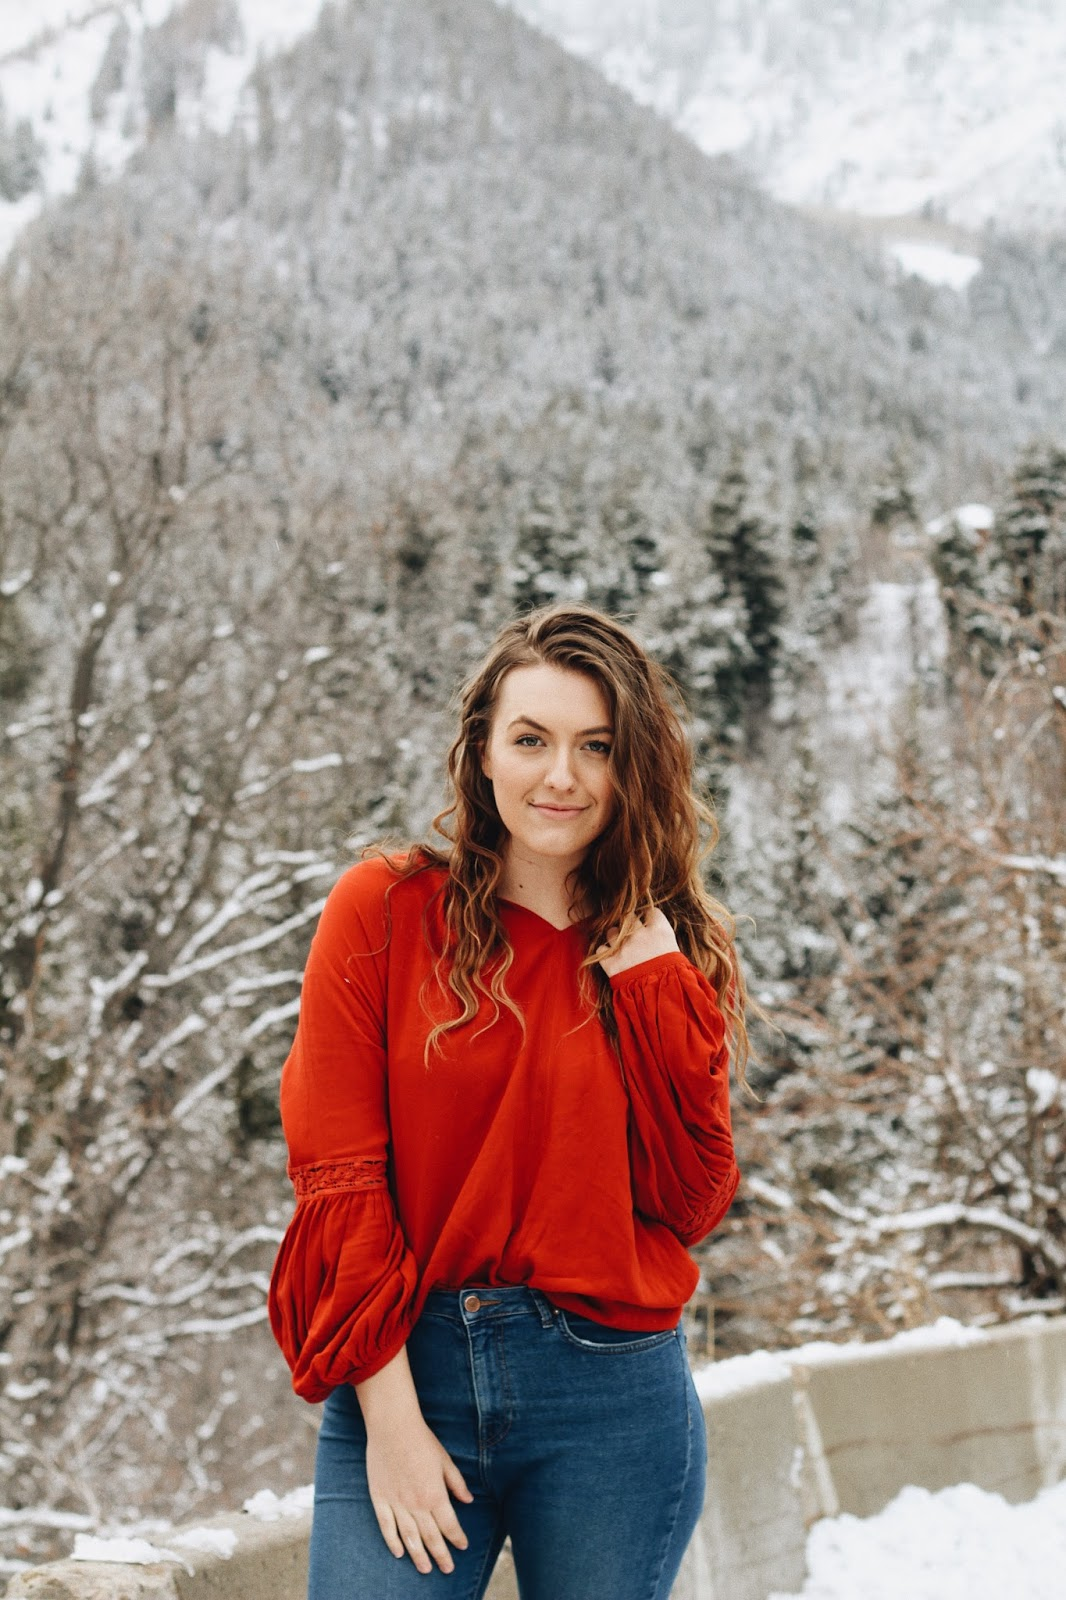 be proud of yourself lady in red portrait sundance winter mountains